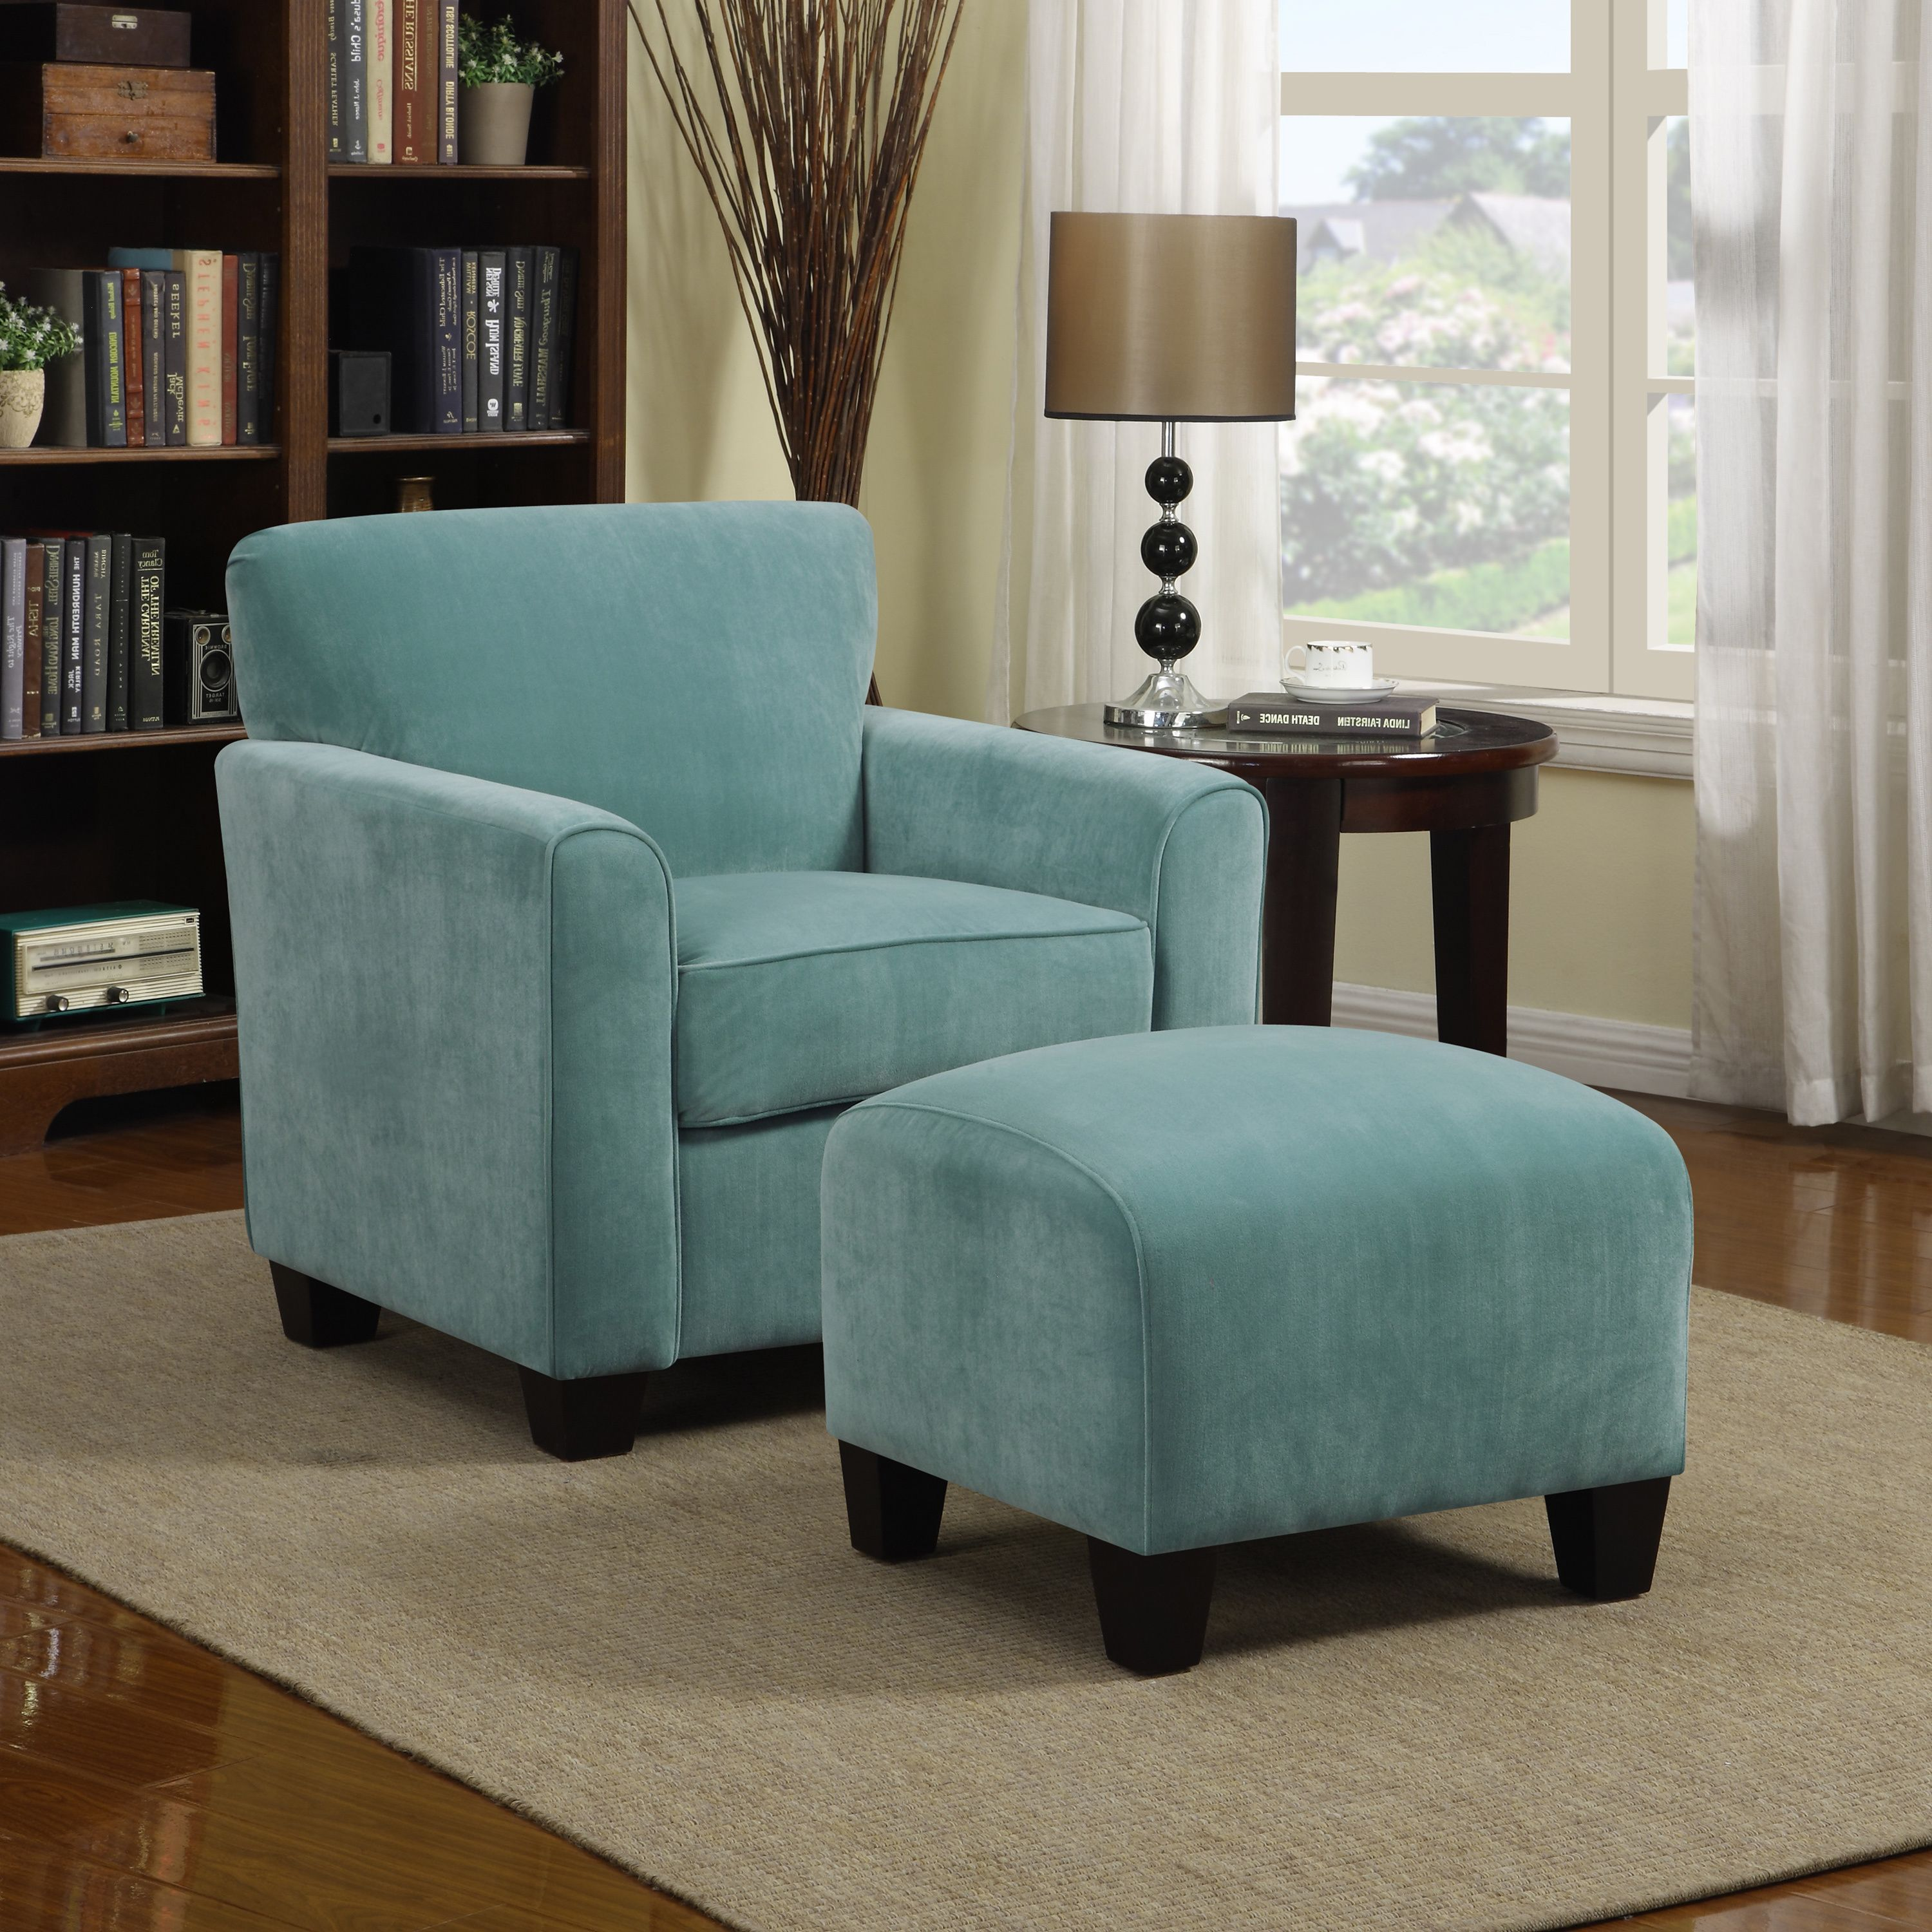 The Portfolio Park Avenue arm chair and ottoman will add style to